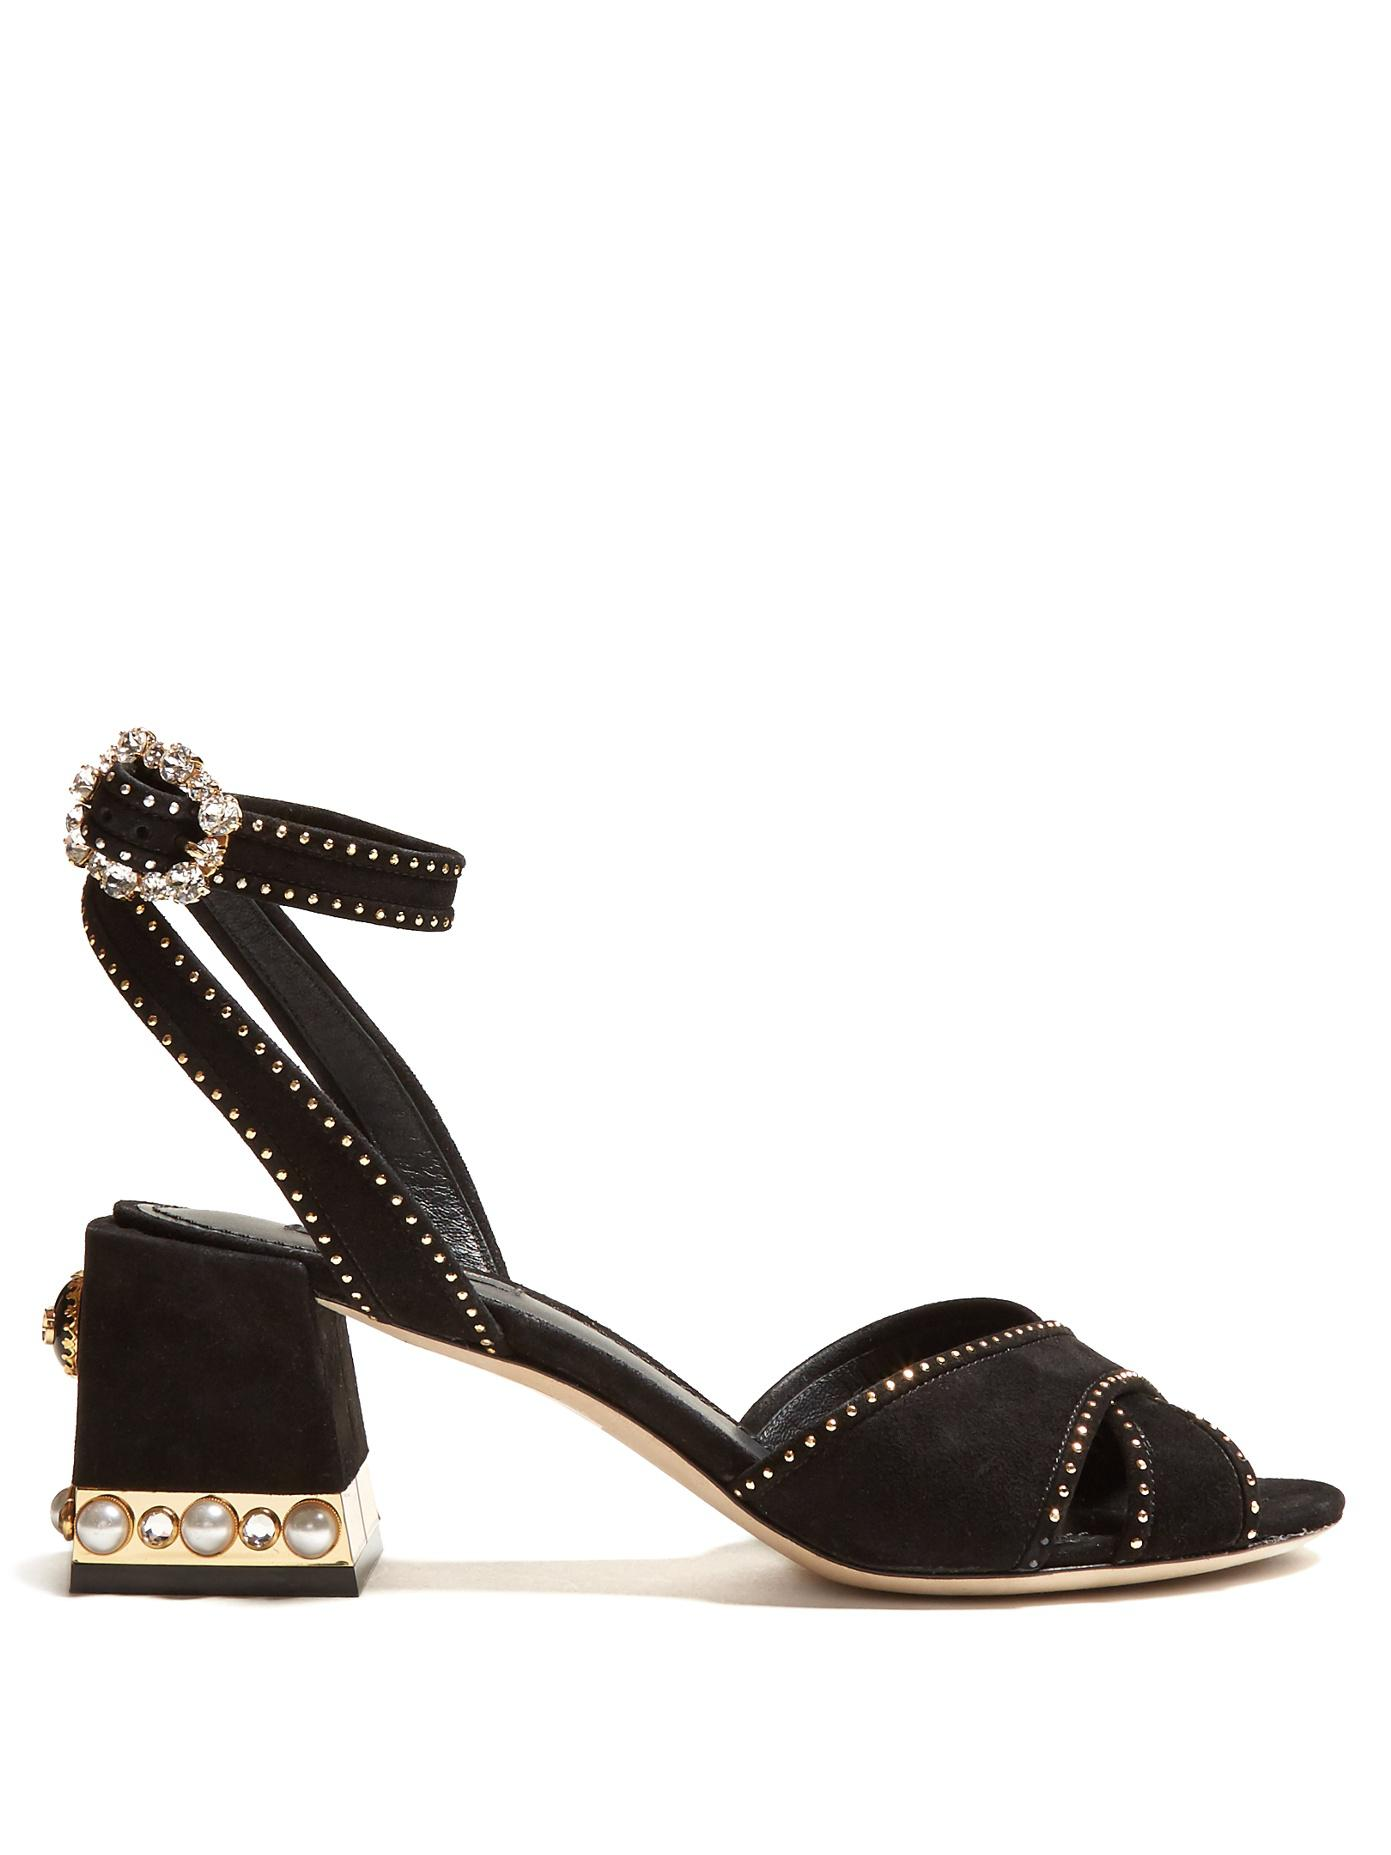 Dolce & Gabbana Embroidered Suede Sandals fdfzOxvJQ